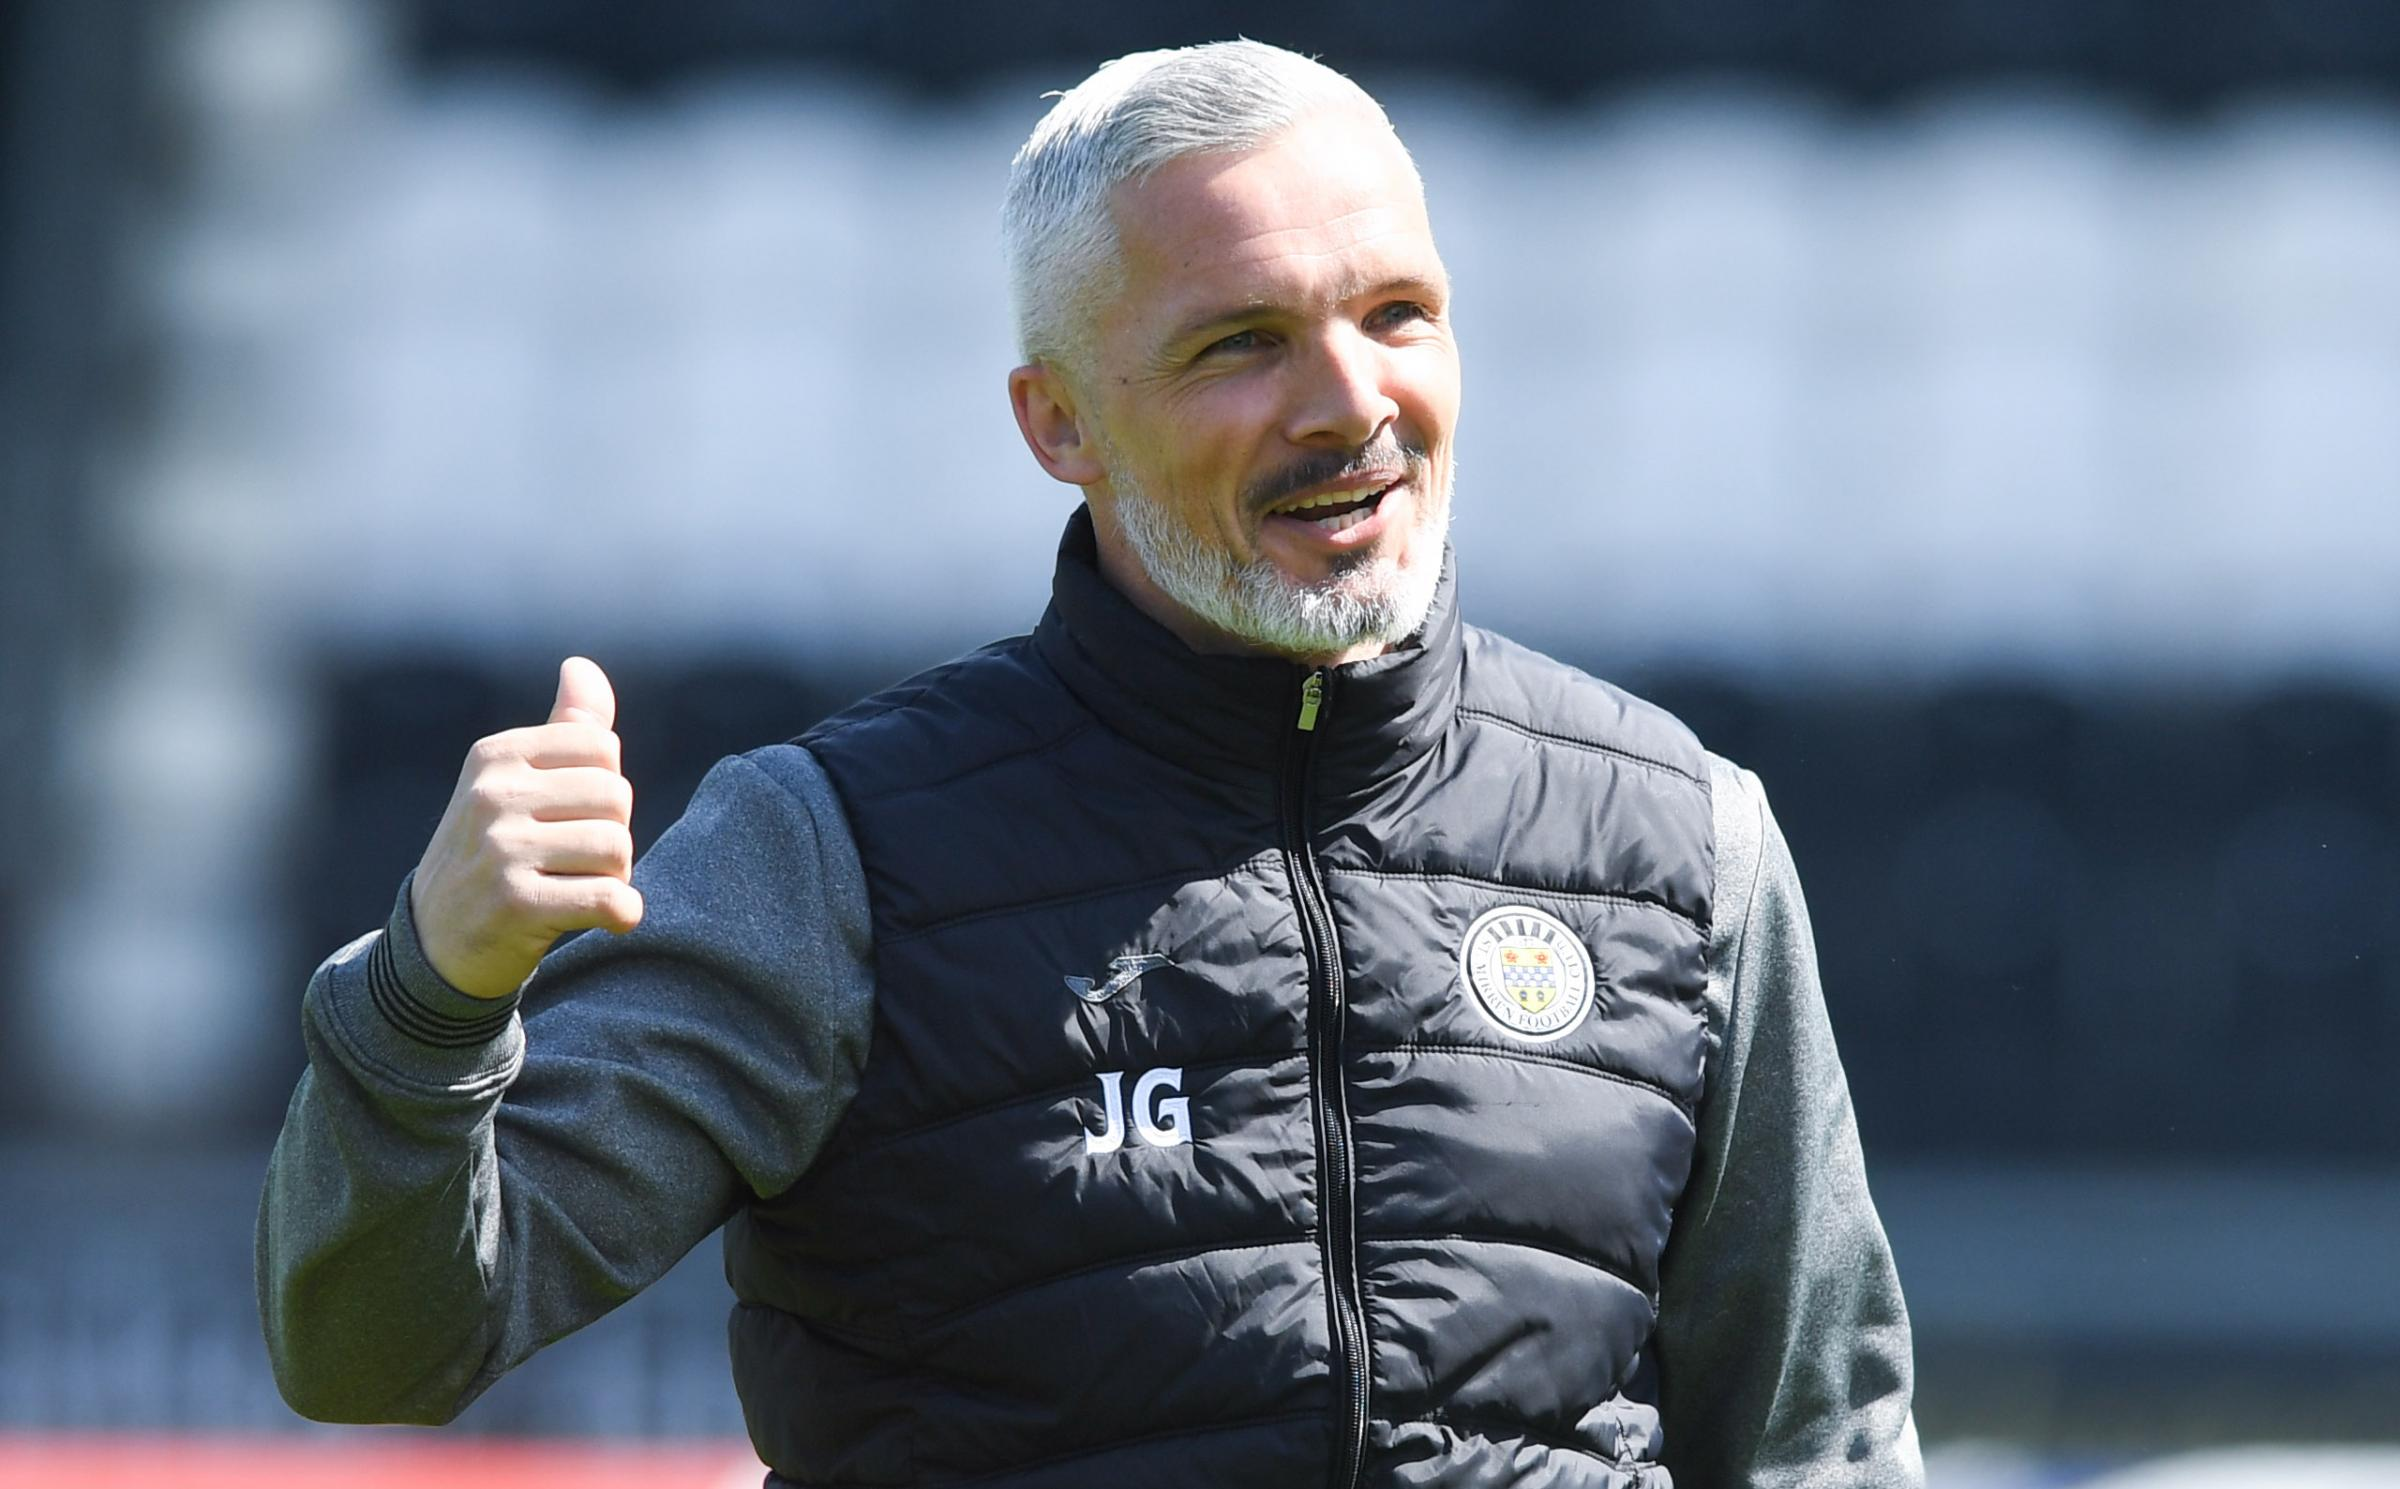 St Mirren 2-0 Partick Thistle: Jim Goodwin relieved to avoid Celtic and Rangers in Premier Sports Cup